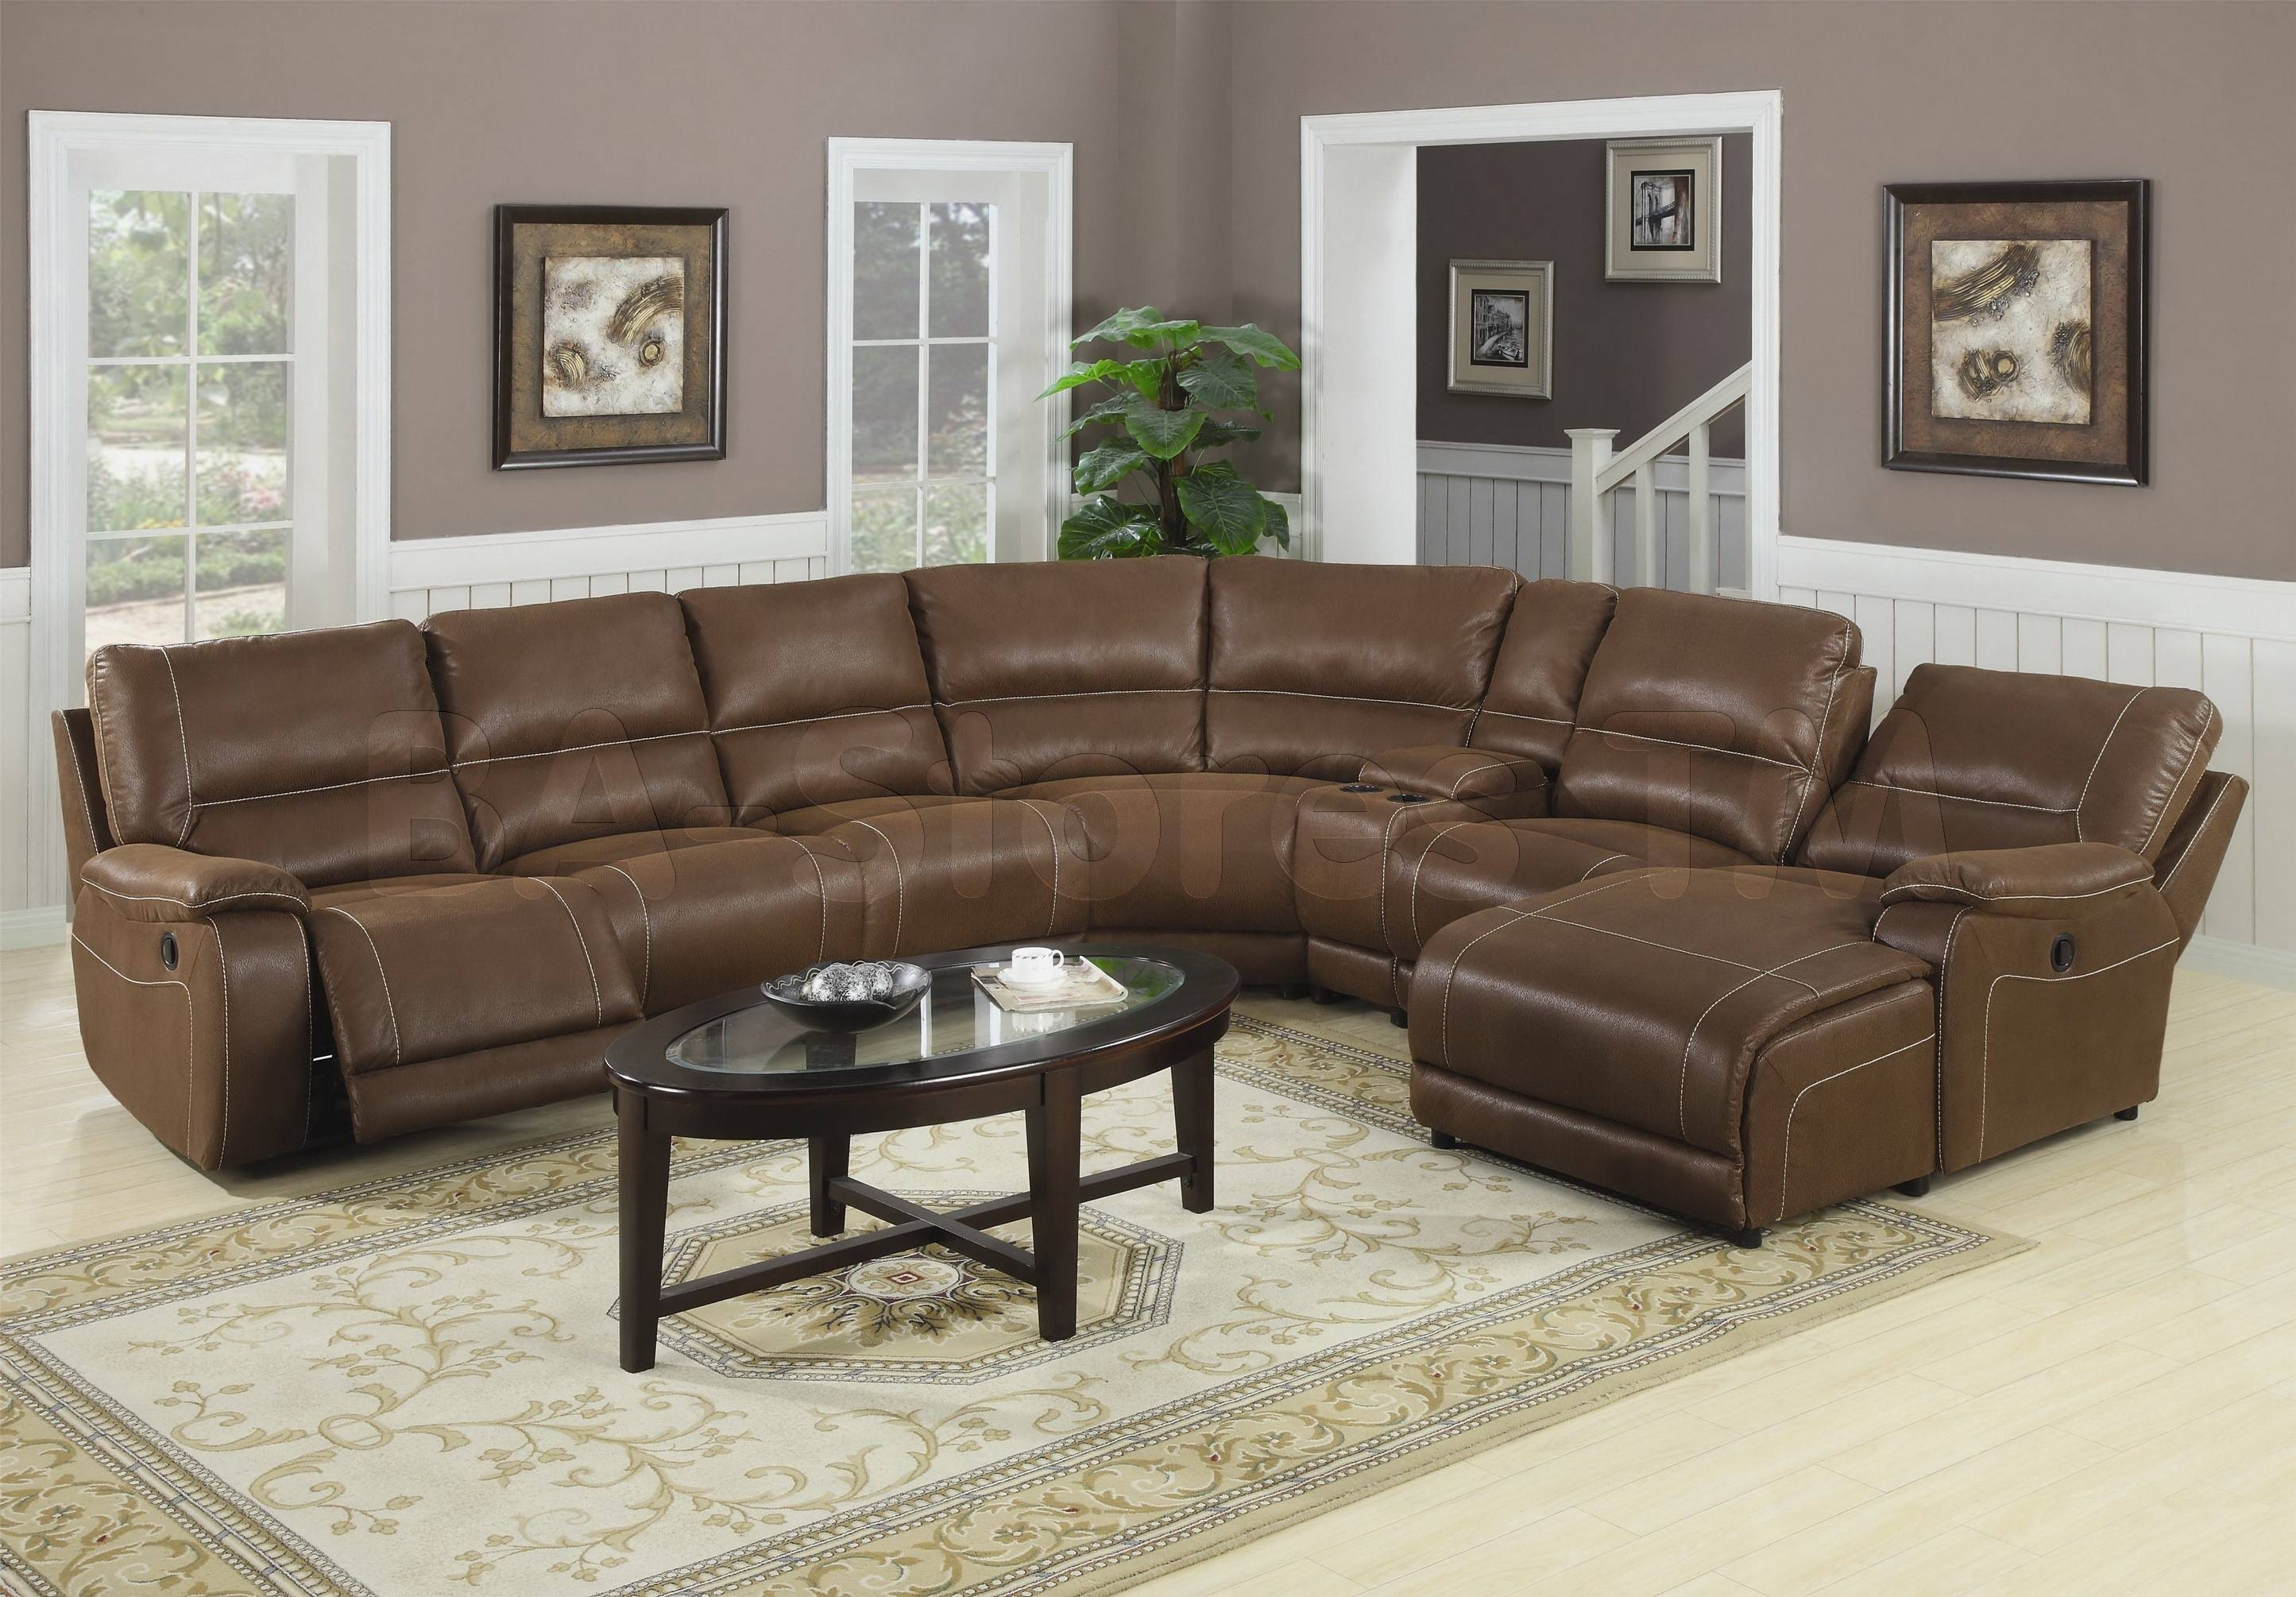 Furniture: Oversized Sectional Oversized Sofas Large Sectional Sofas in Huge Sofas (Image 7 of 30)